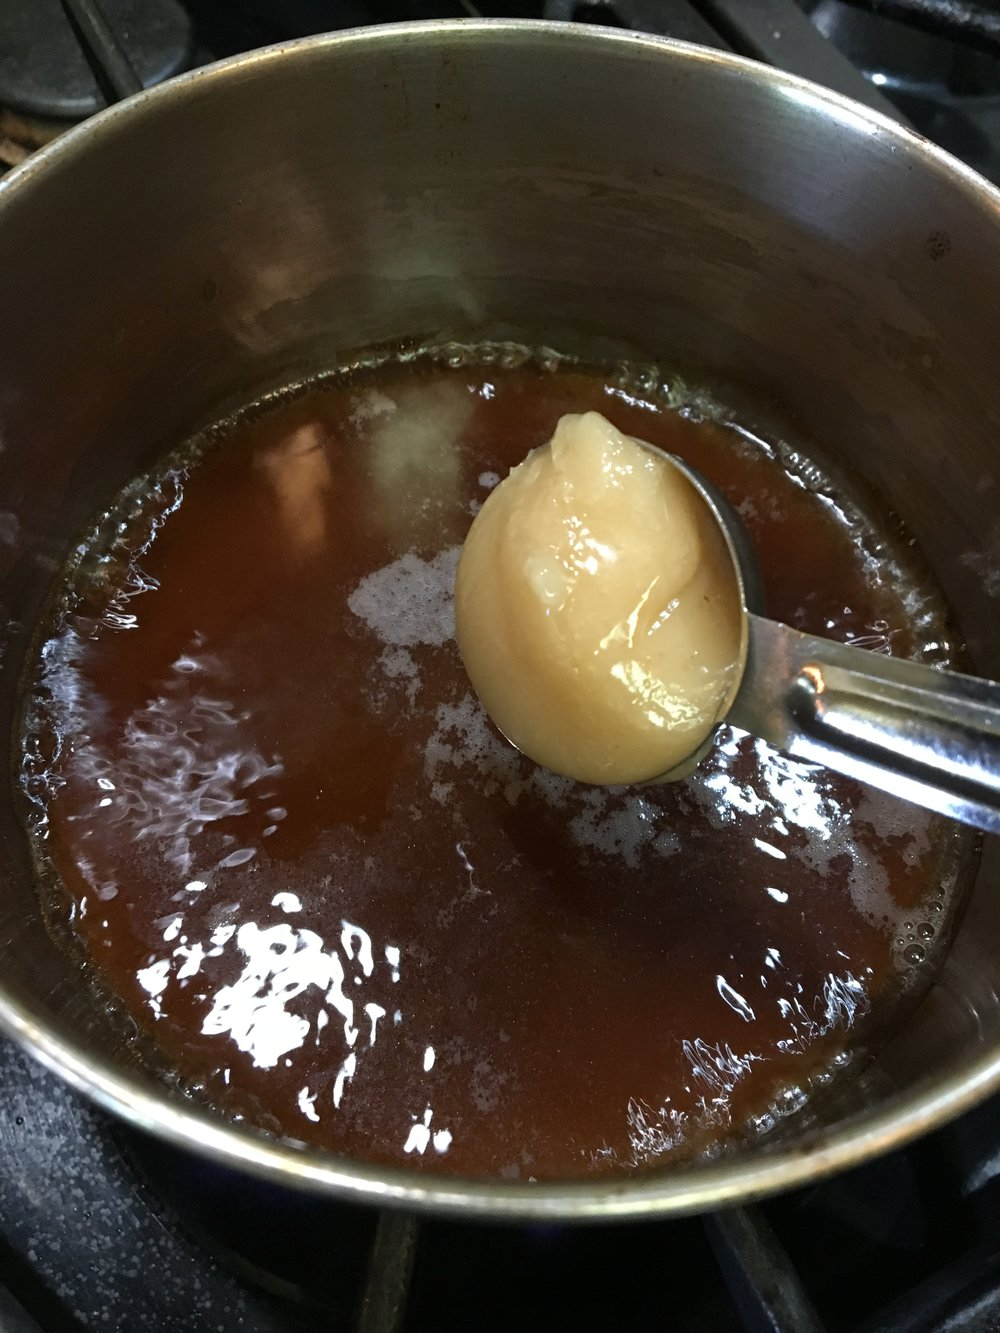 Adding Creamed Honey to the sauce